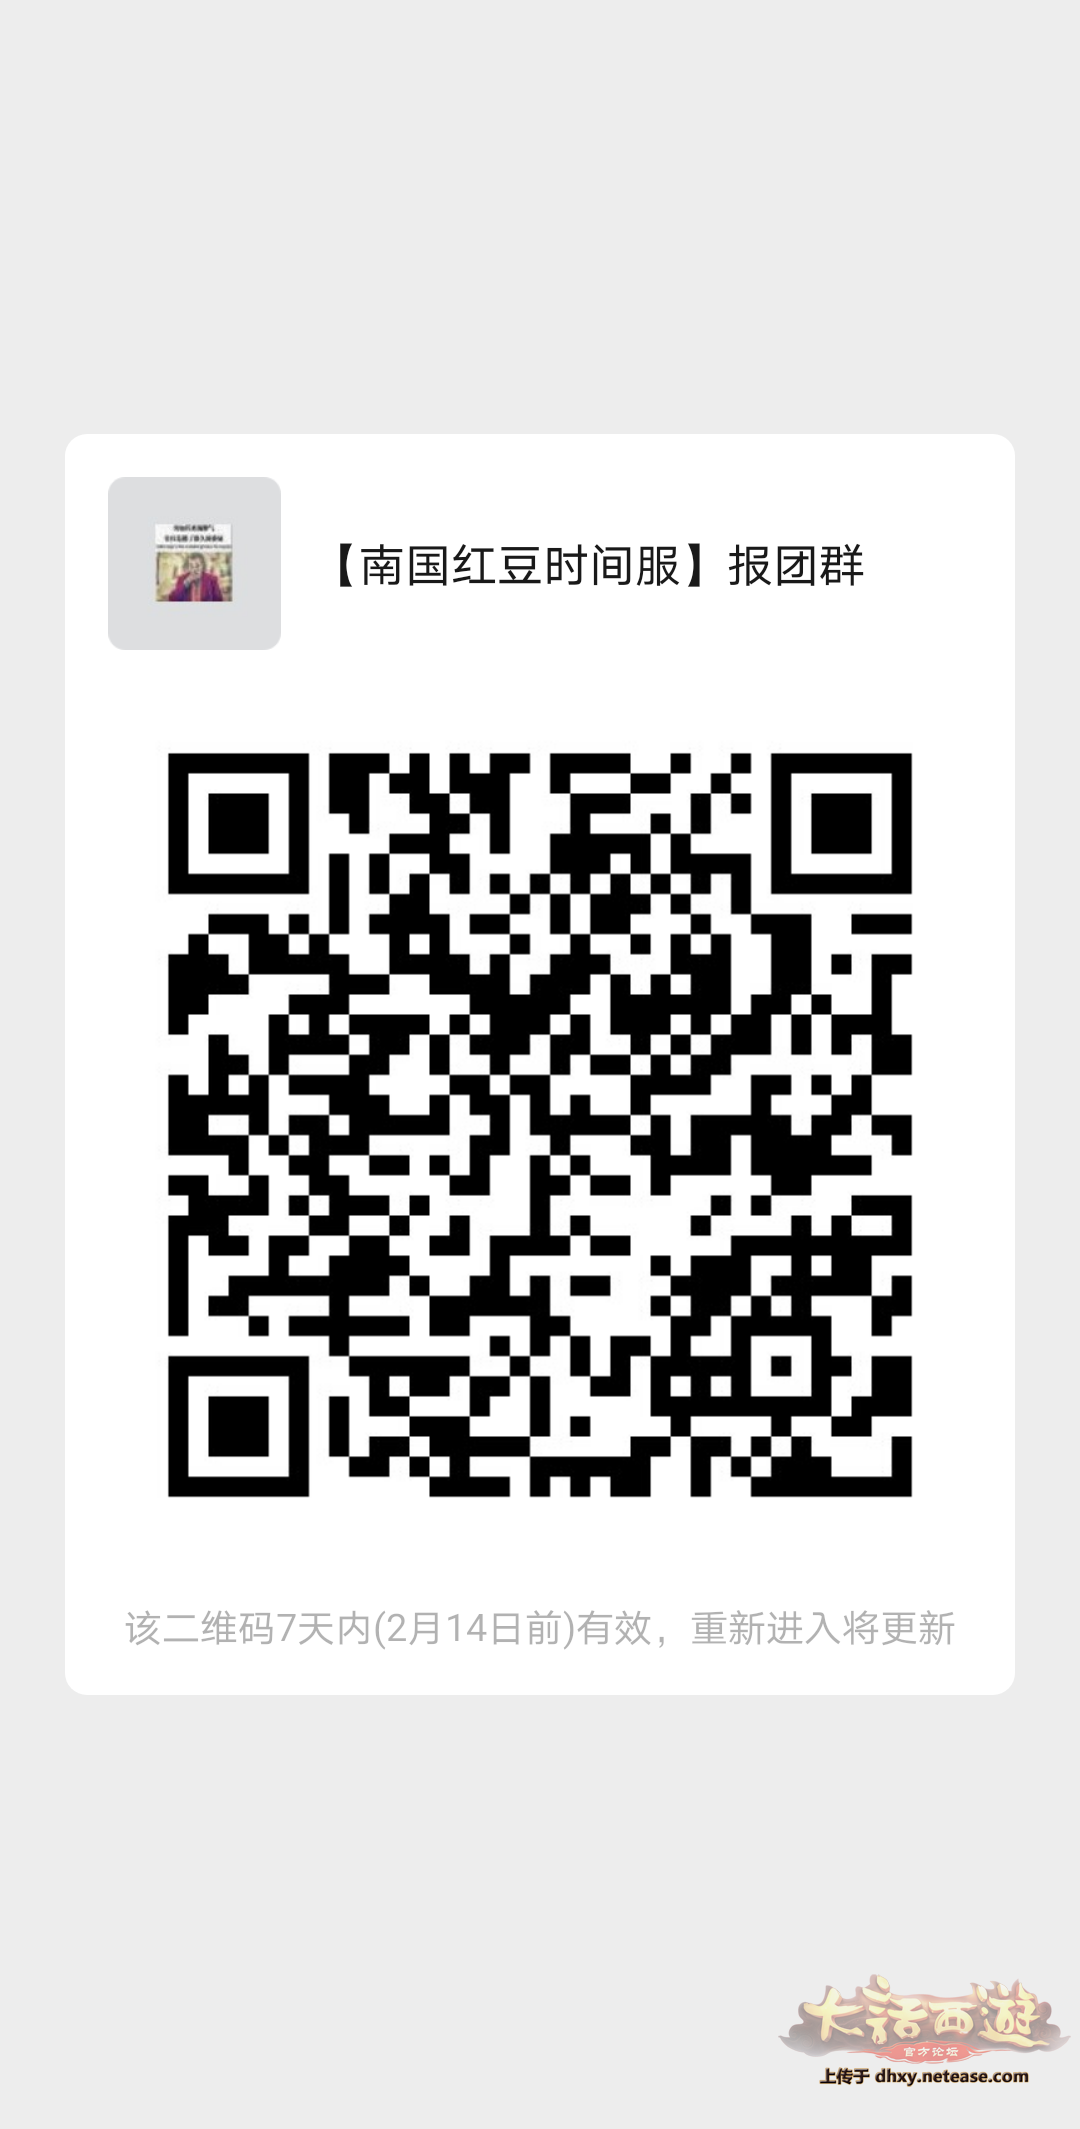 mmqrcode1581075064410.png